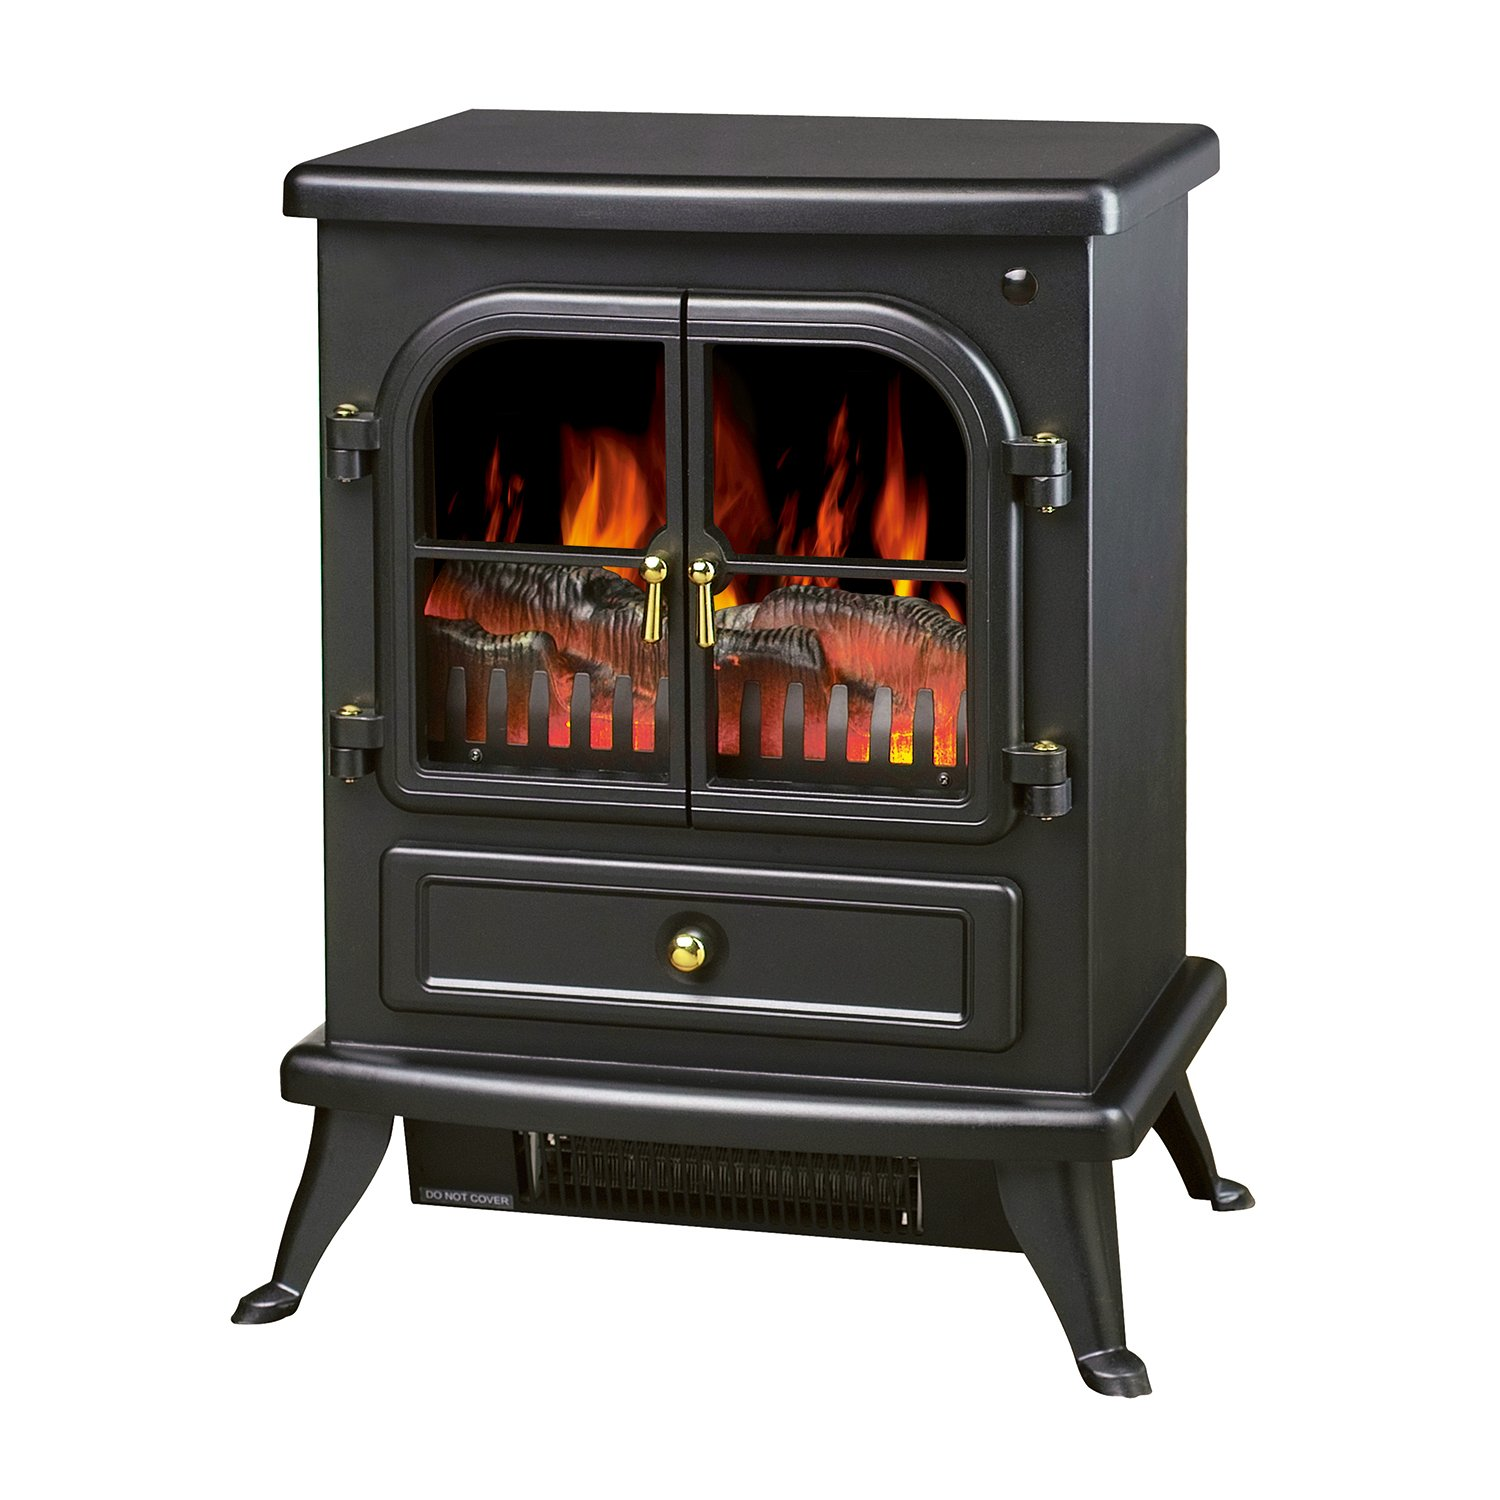 HomCom 17'' 1500W Free Standing Electric Fireplace w/Timer and Remote - Black